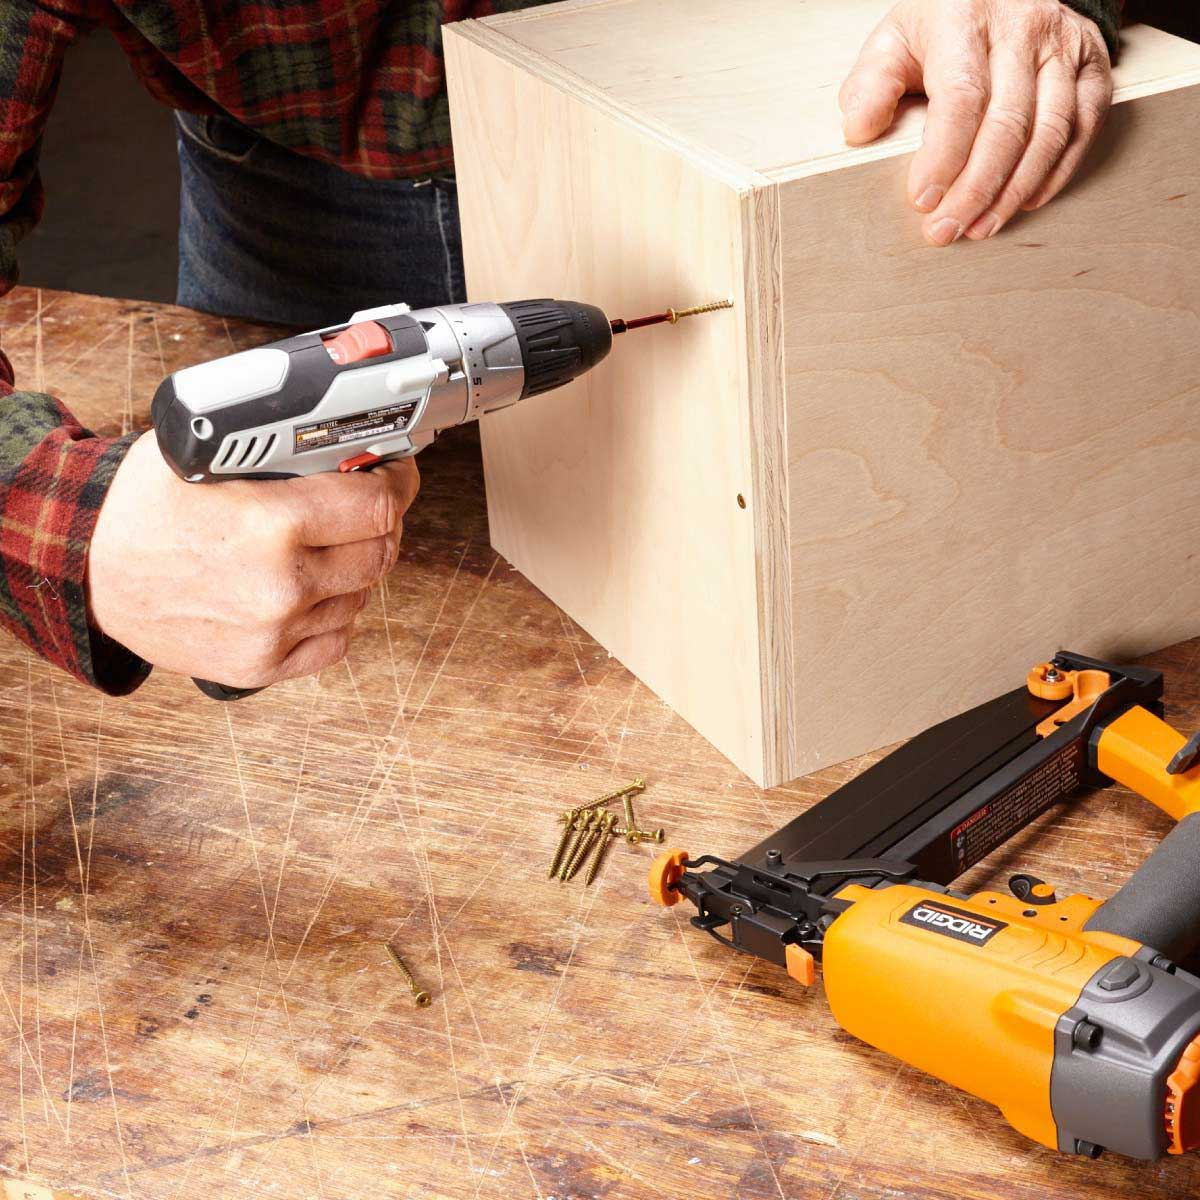 How to choose a Finish Nailer